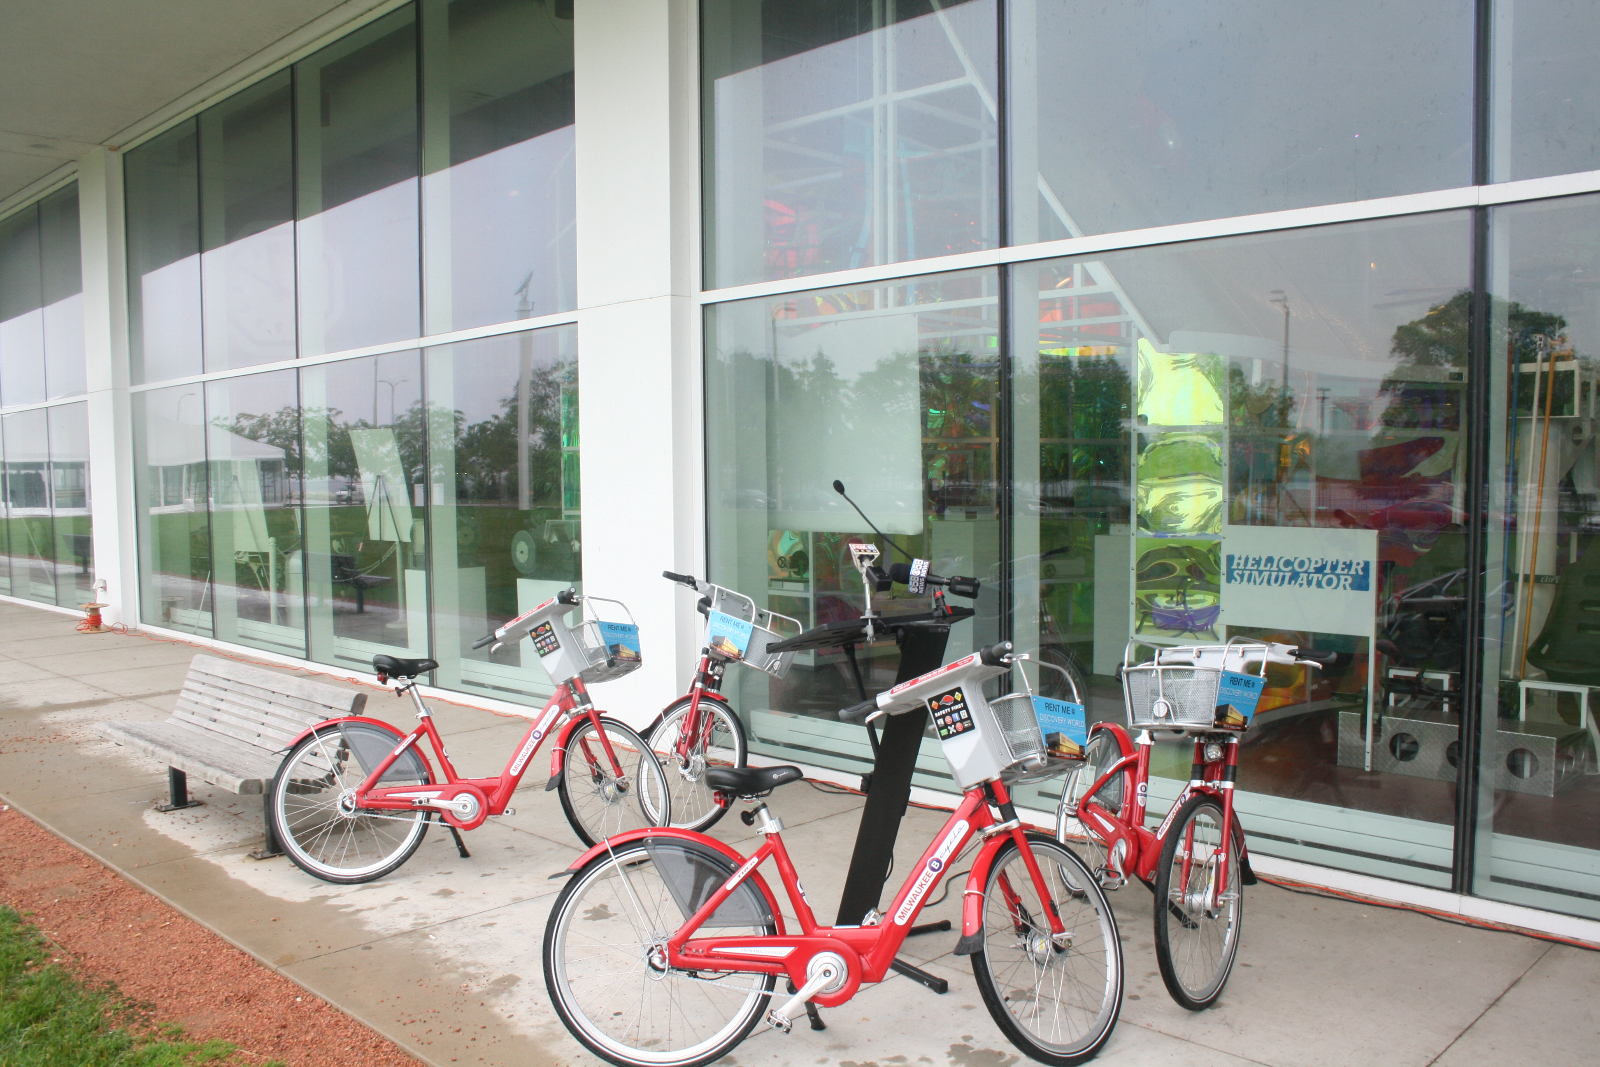 B-Cycle bikes set up for Bike-sharing press conference.